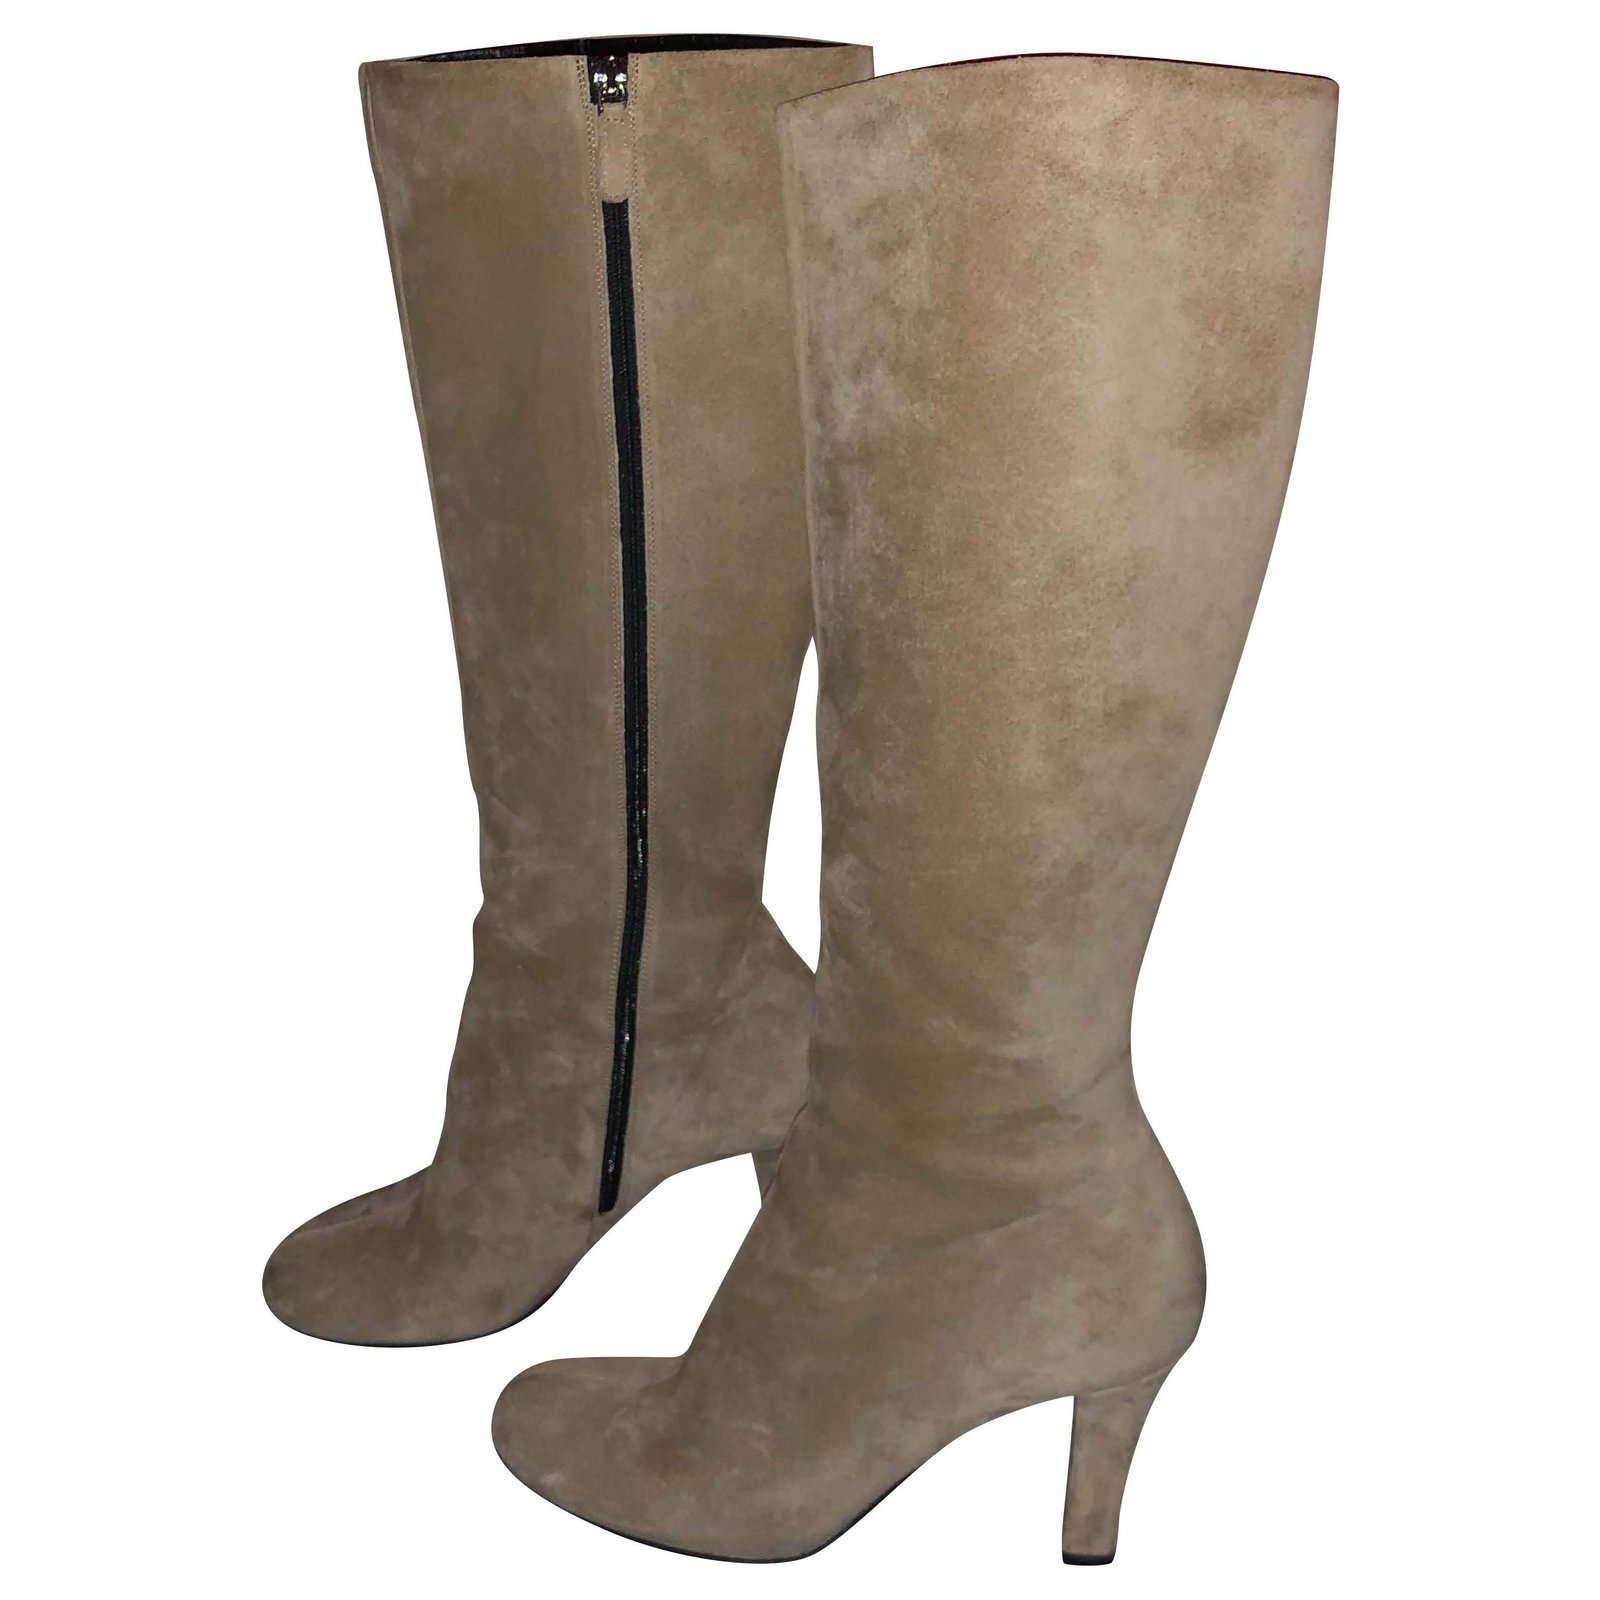 Gucci Gucci suede knee-high boots Boots